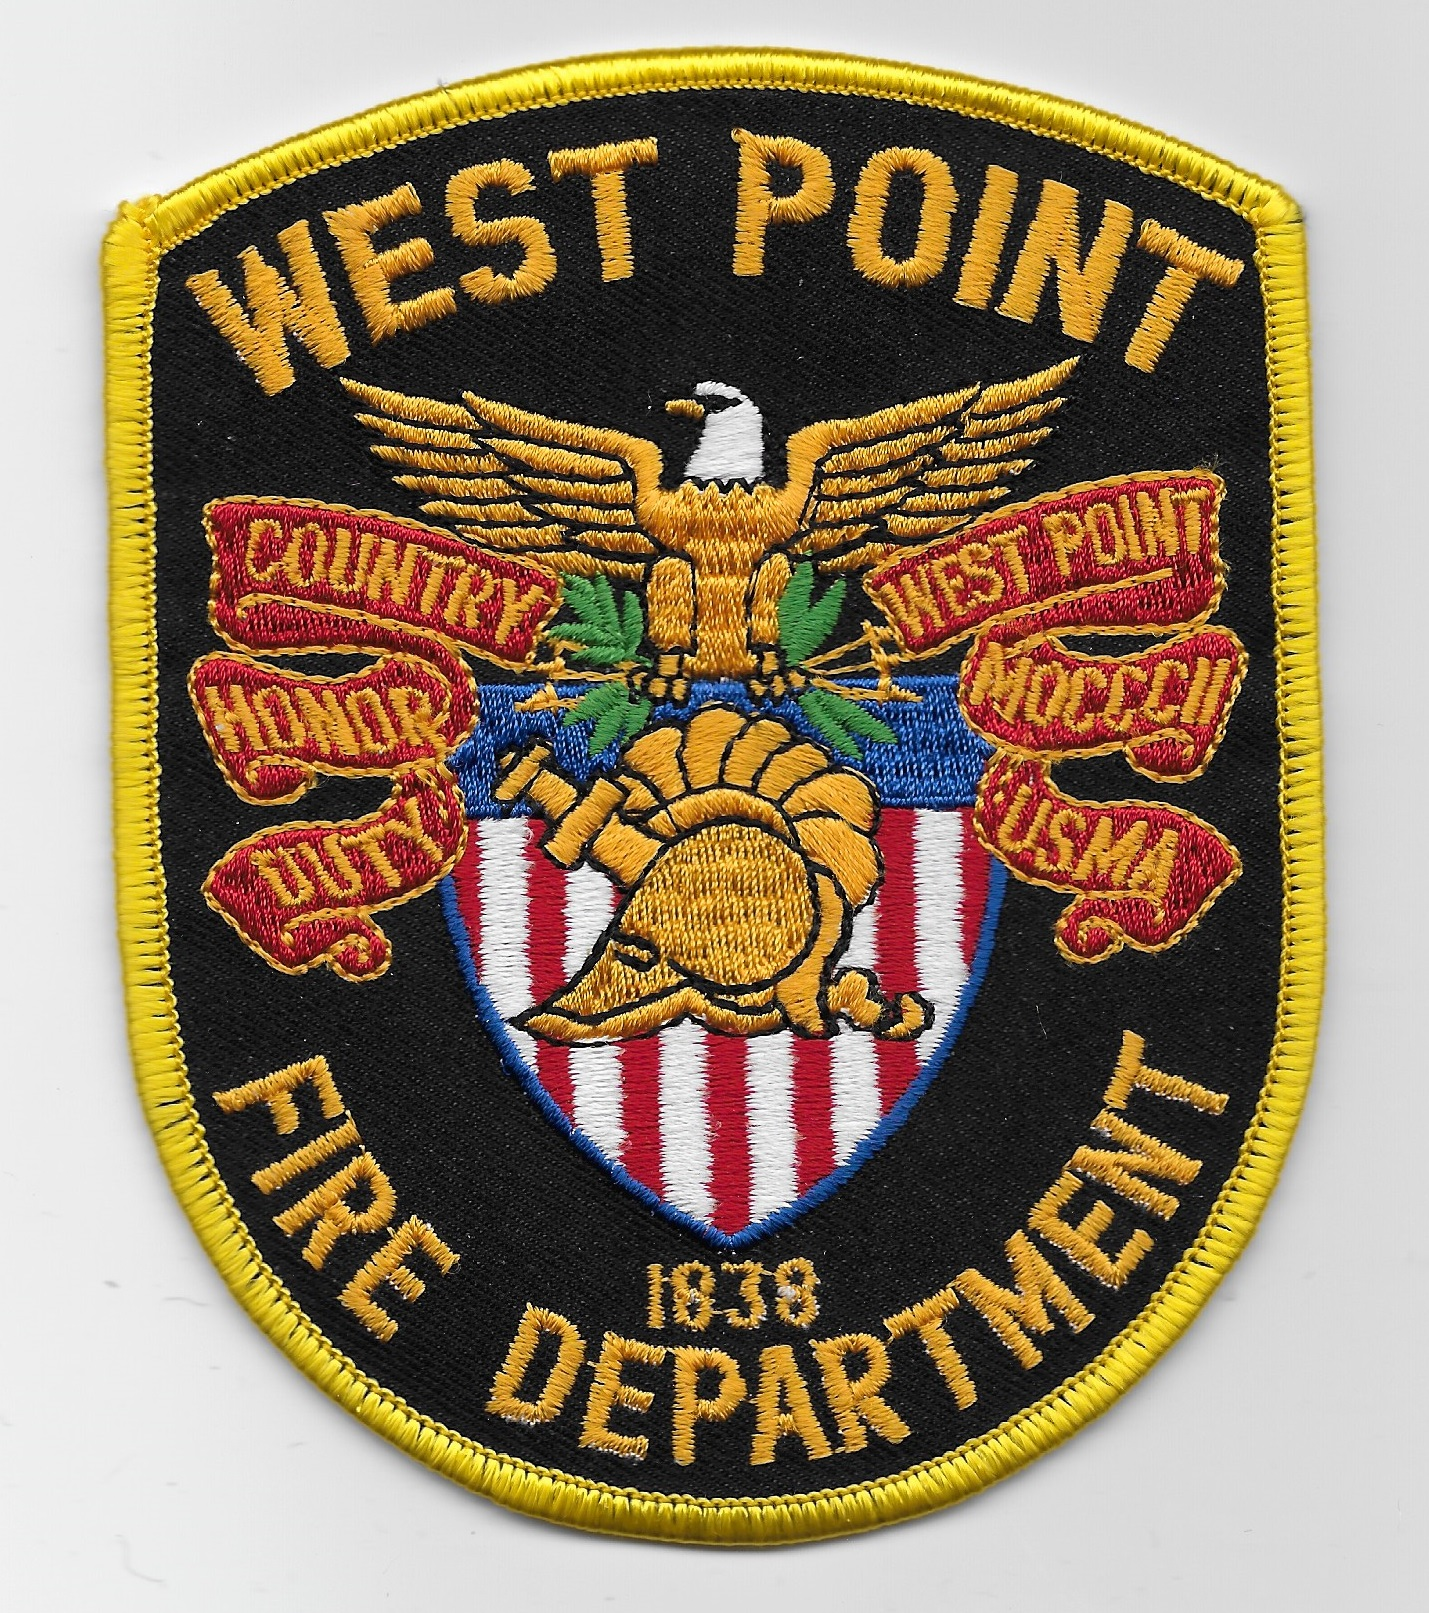 West Point Fire Dept NY